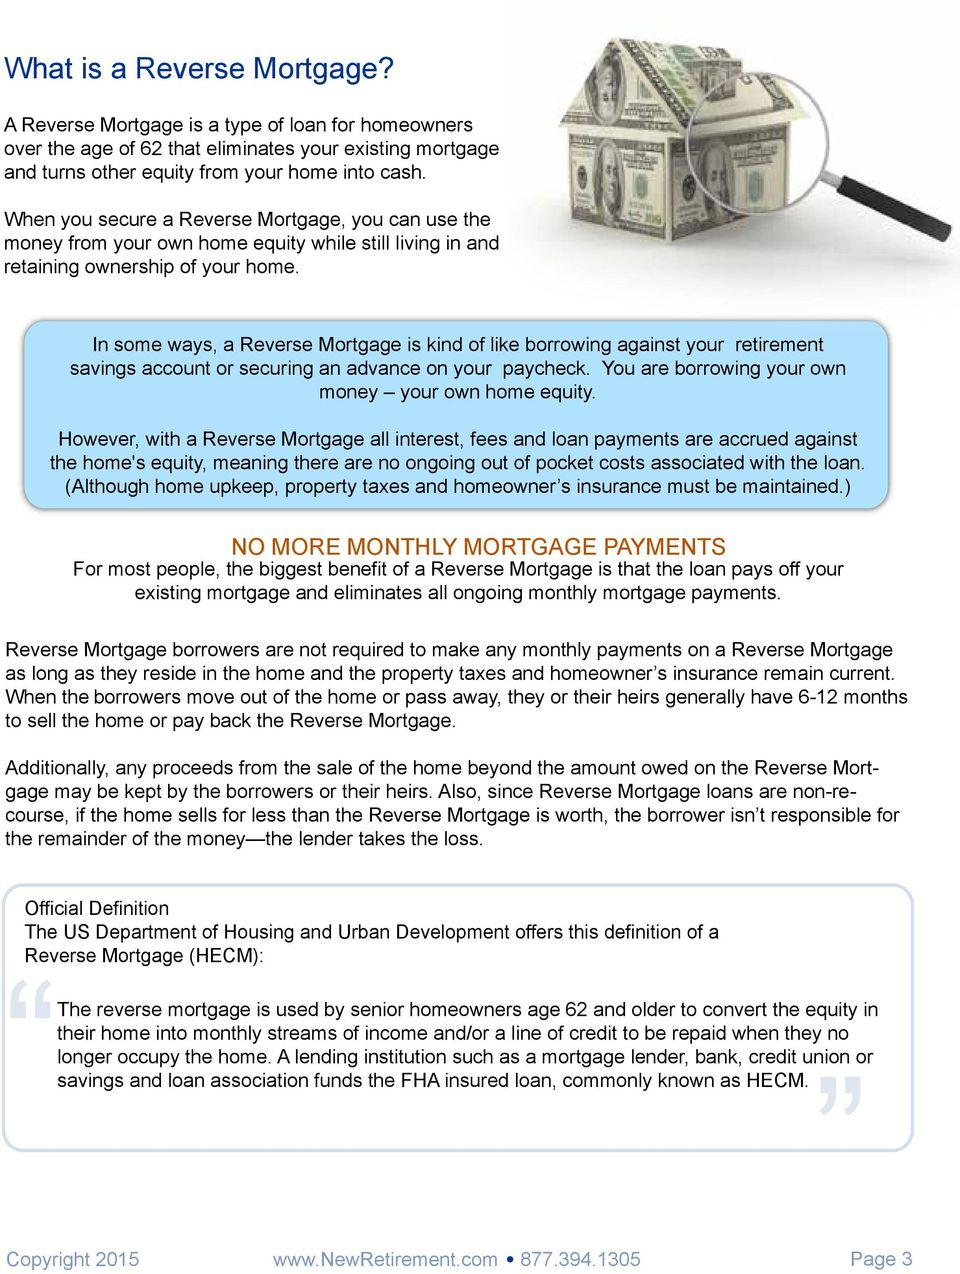 is a reverse mortgage right for you? - pdf